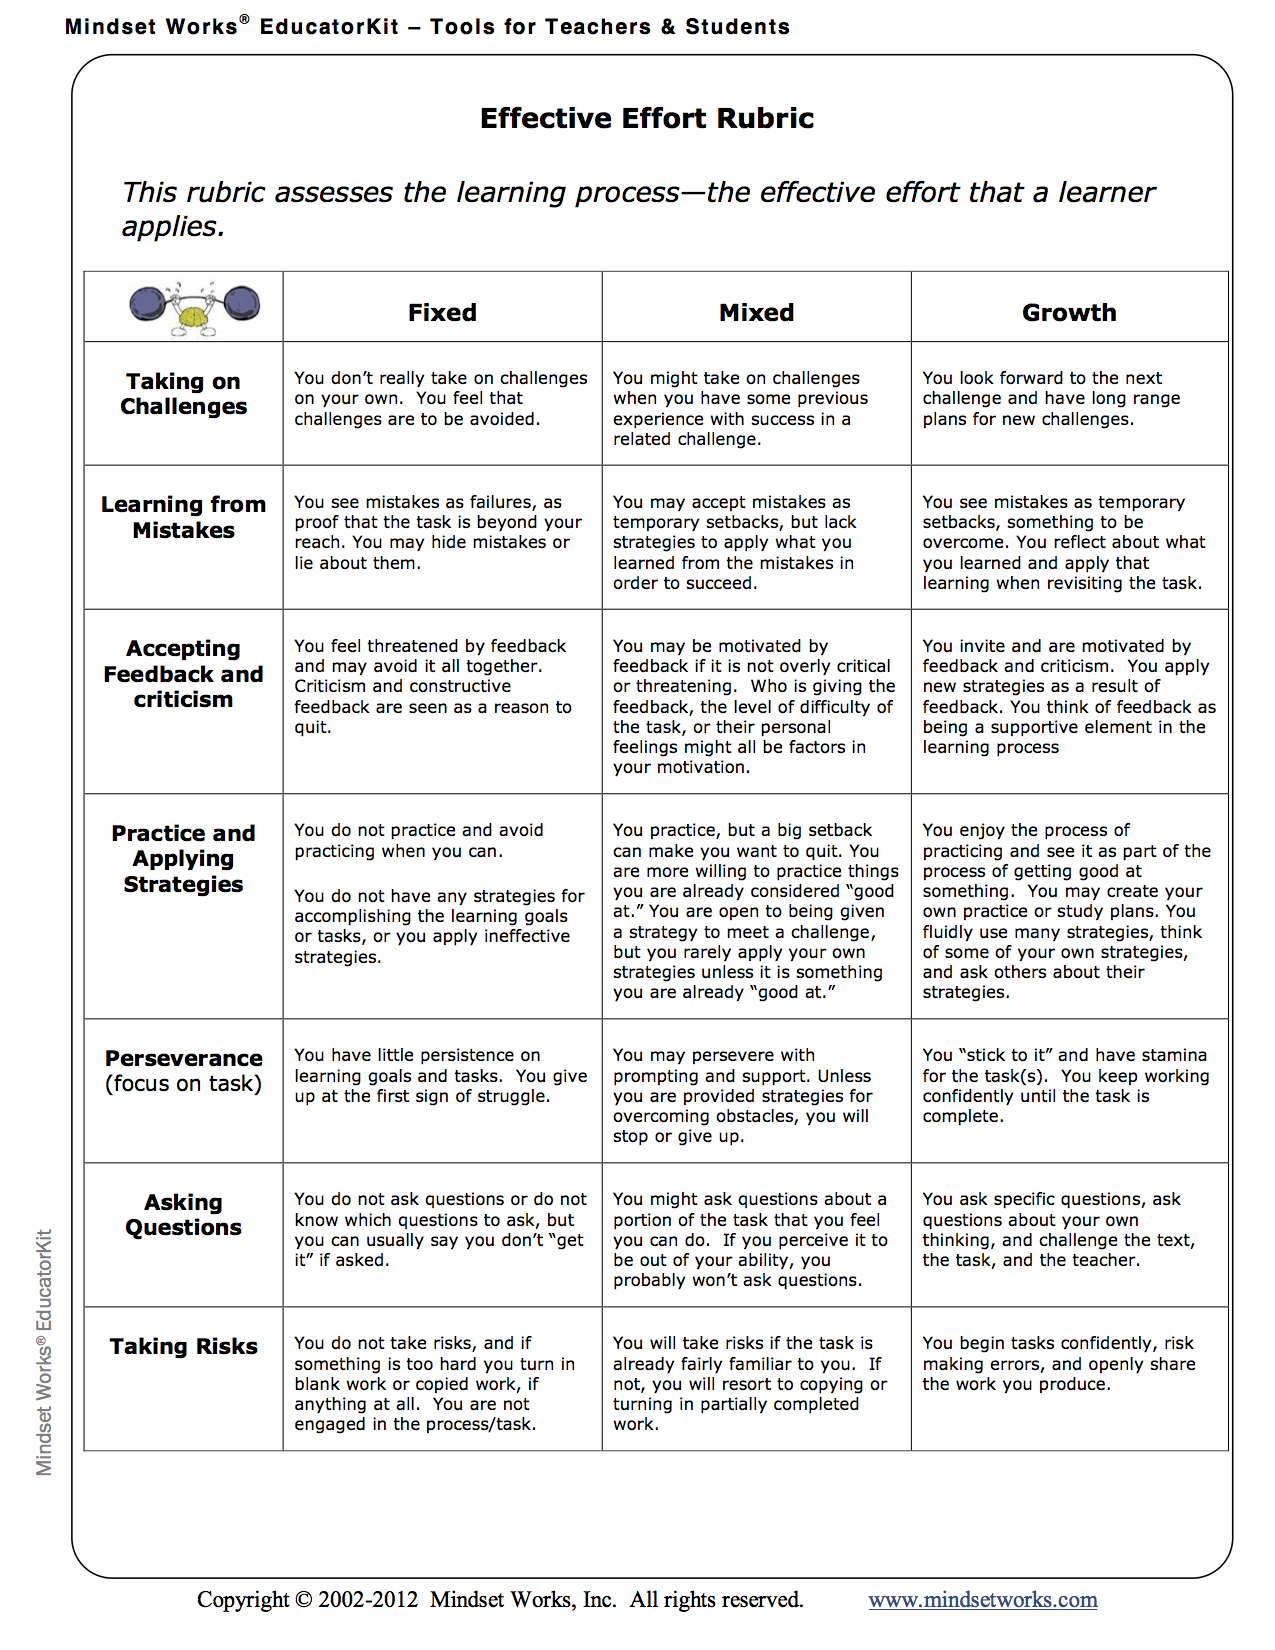 Effective Effort Rubric  Growth Mindset    Rubrics